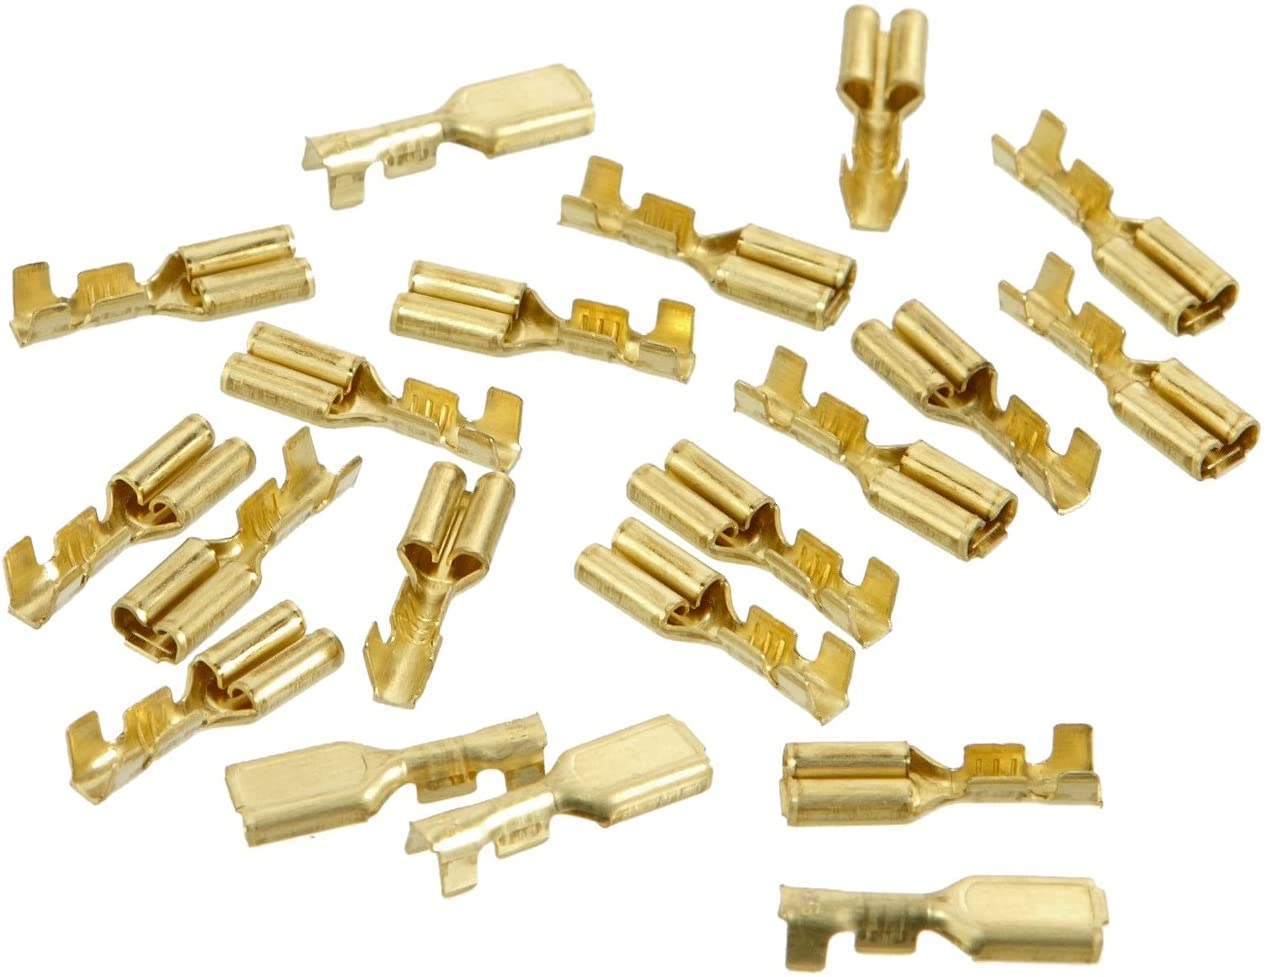 Marklin My World Spade Connectors C Track (20-Piece)